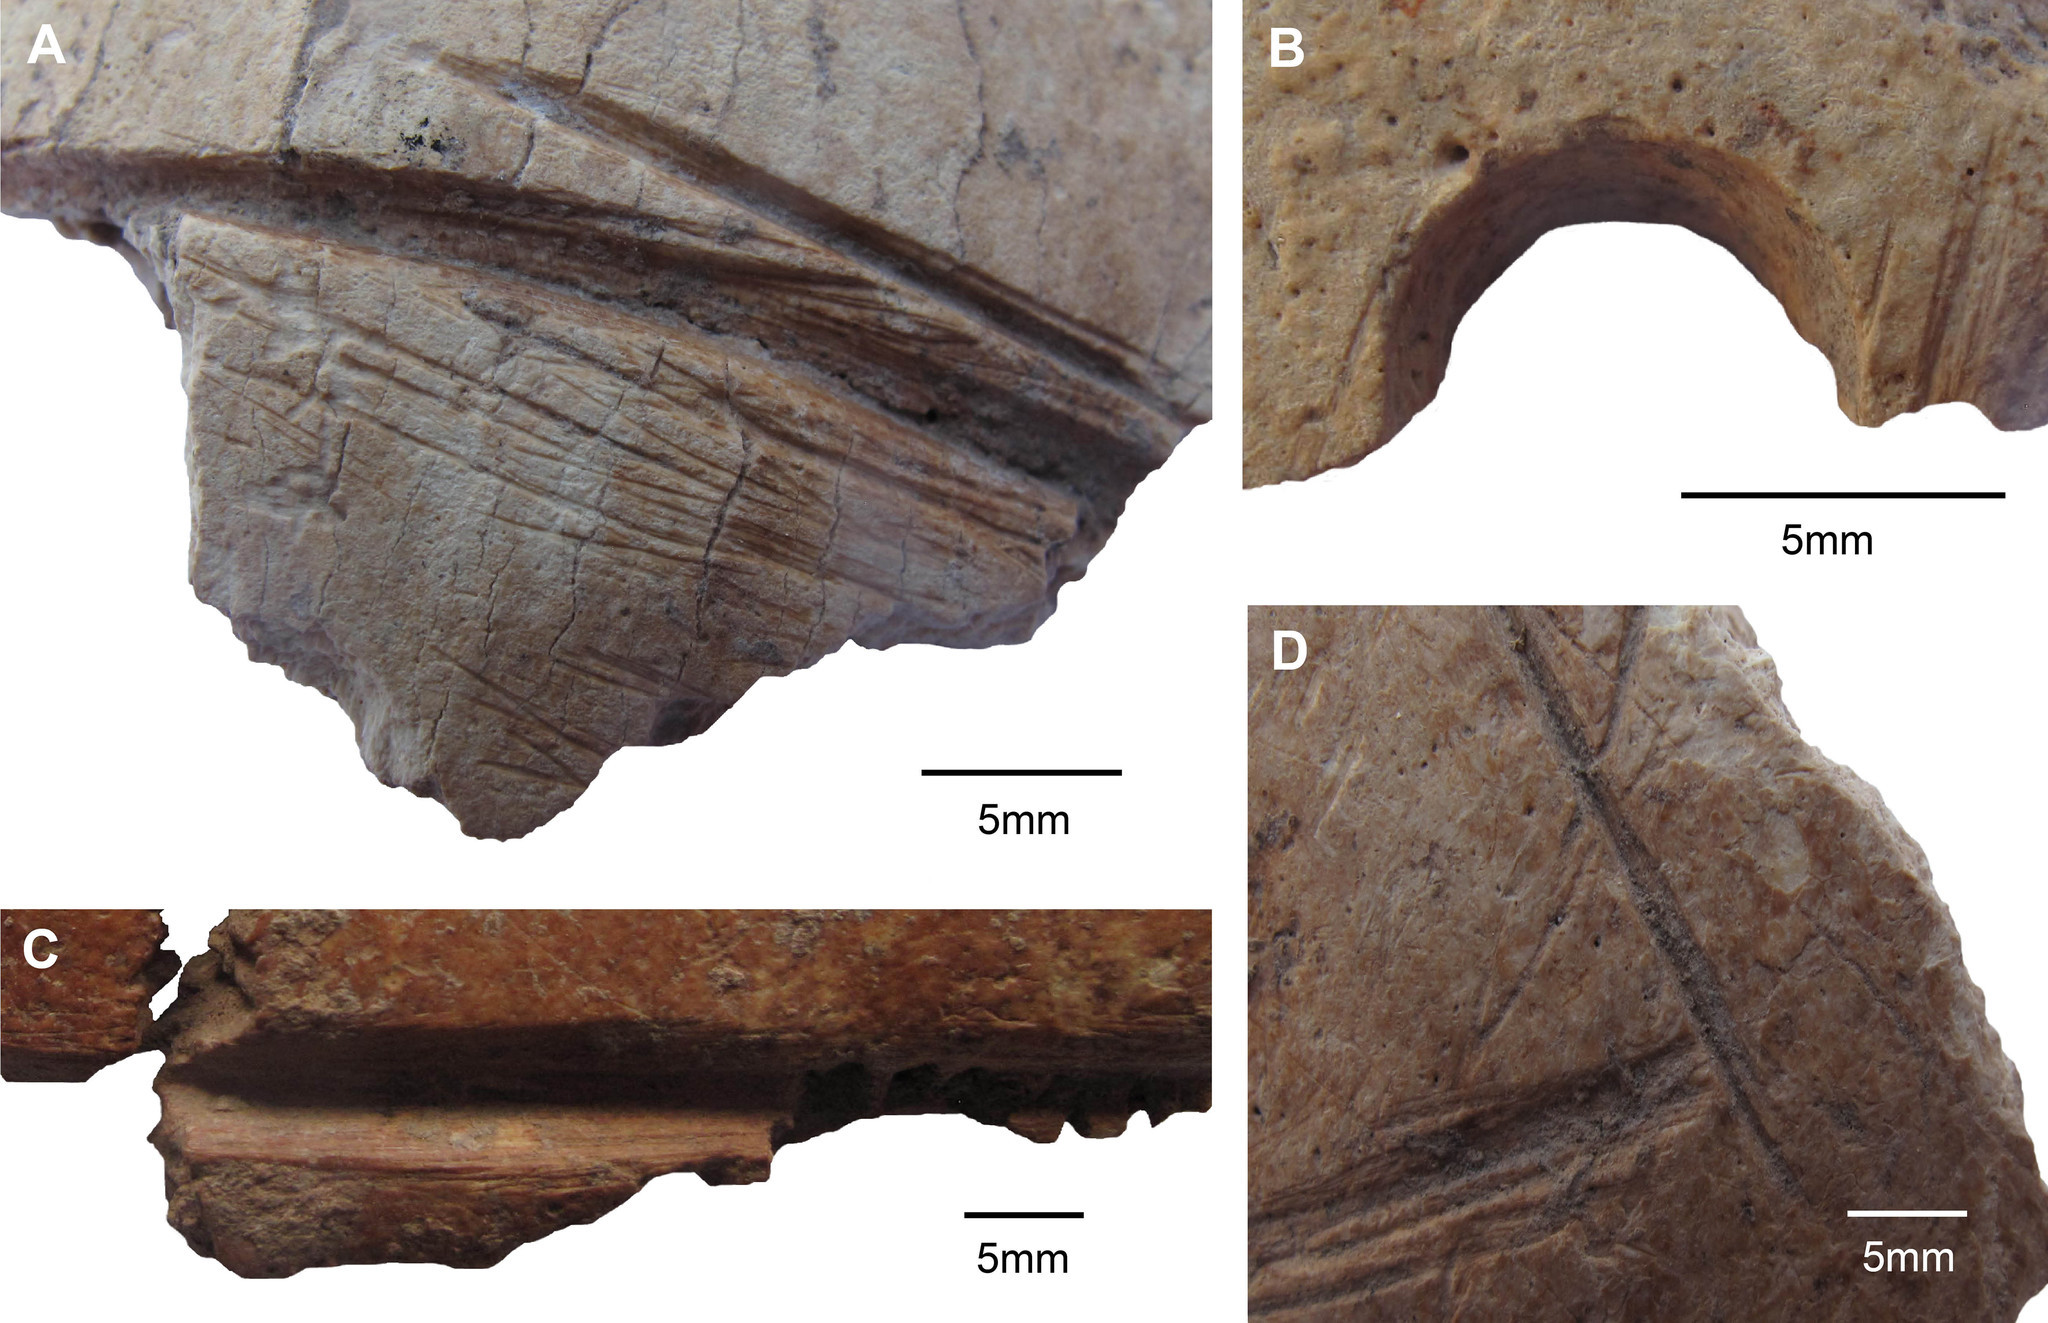 Details of artificial skull modifications show carvings (A, C and D) and a drilled perforation (B).